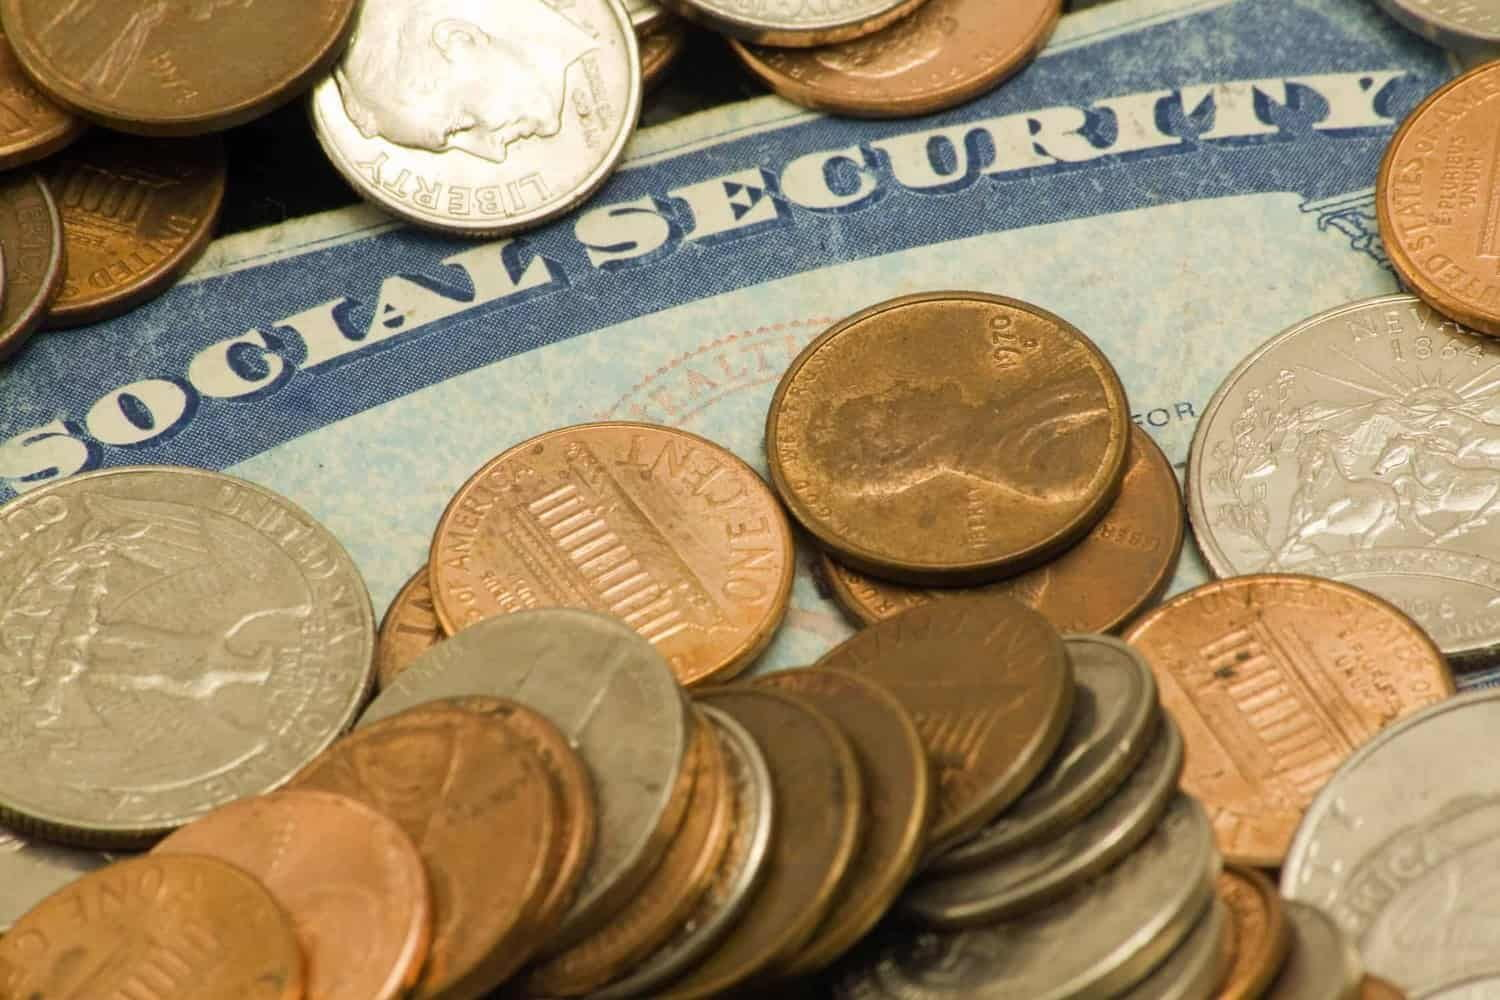 Social Security card surrounded by coins